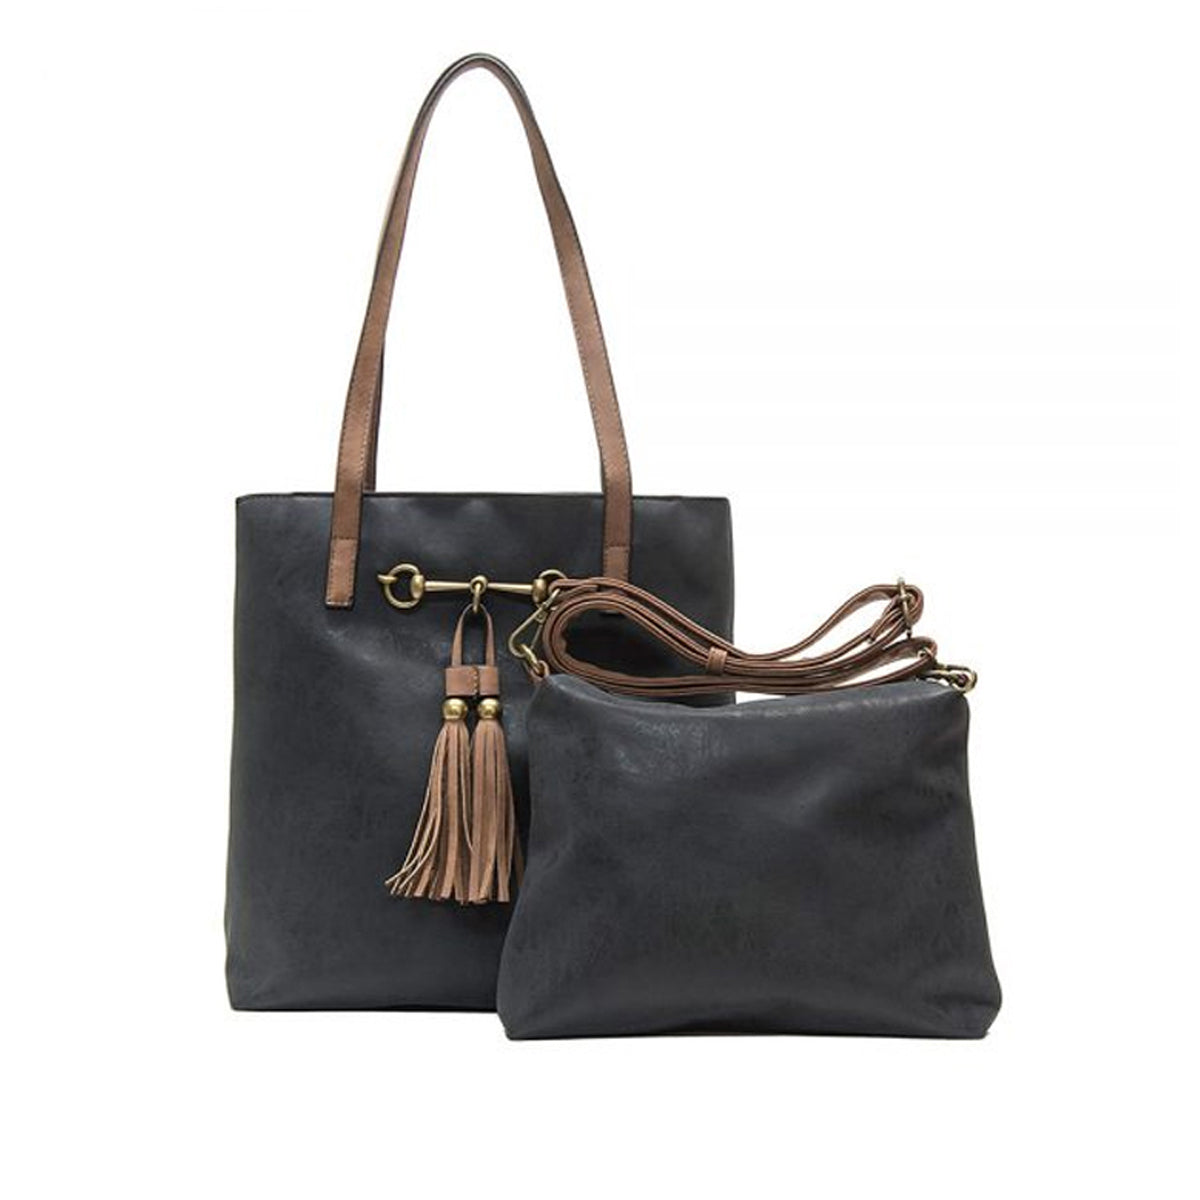 Liz Soto Jane 2 in 1 Tote